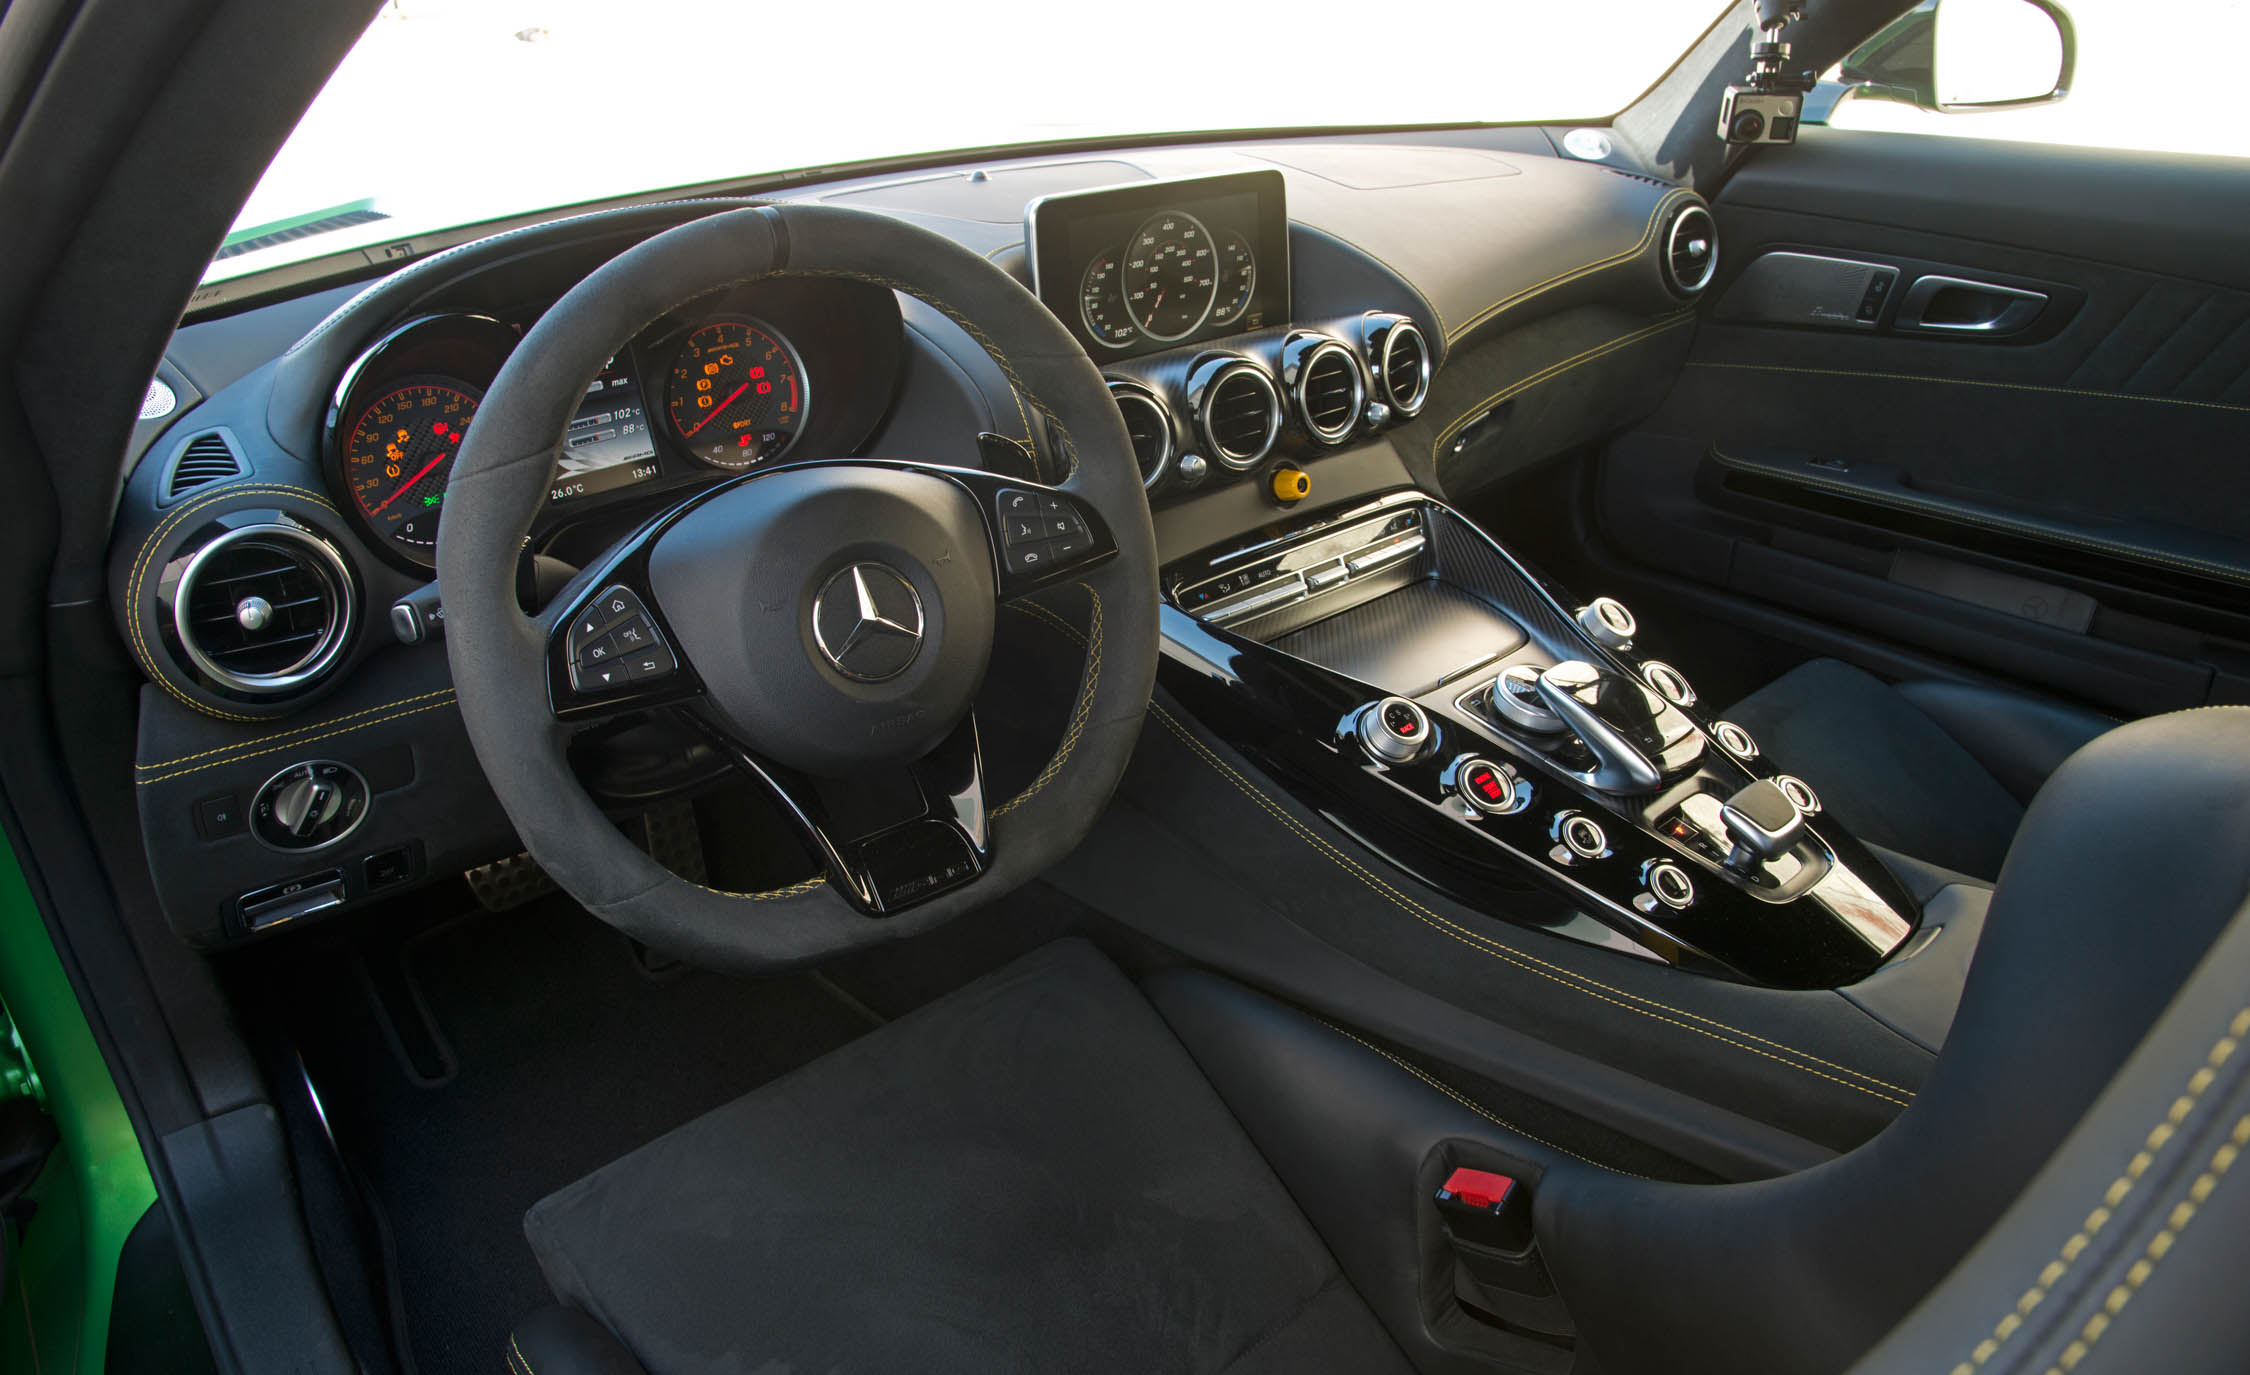 2017 Mercedes Amg Gt R Interior Dashboard And Cockpit (View 3 of 22)